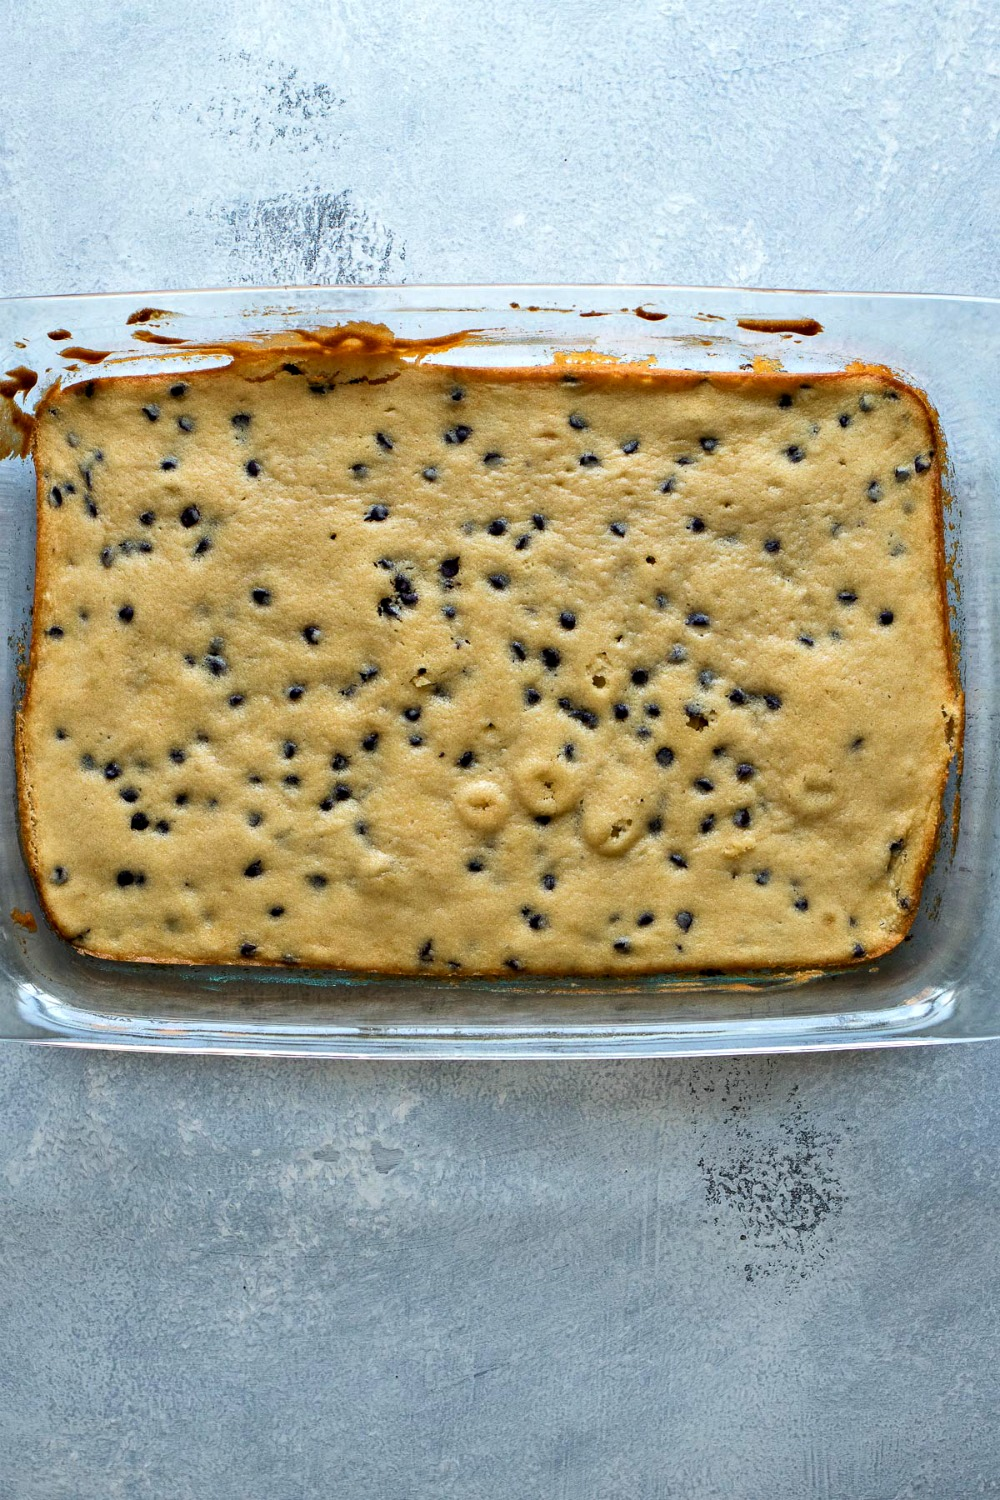 Pan of chocolate chip cookie dough